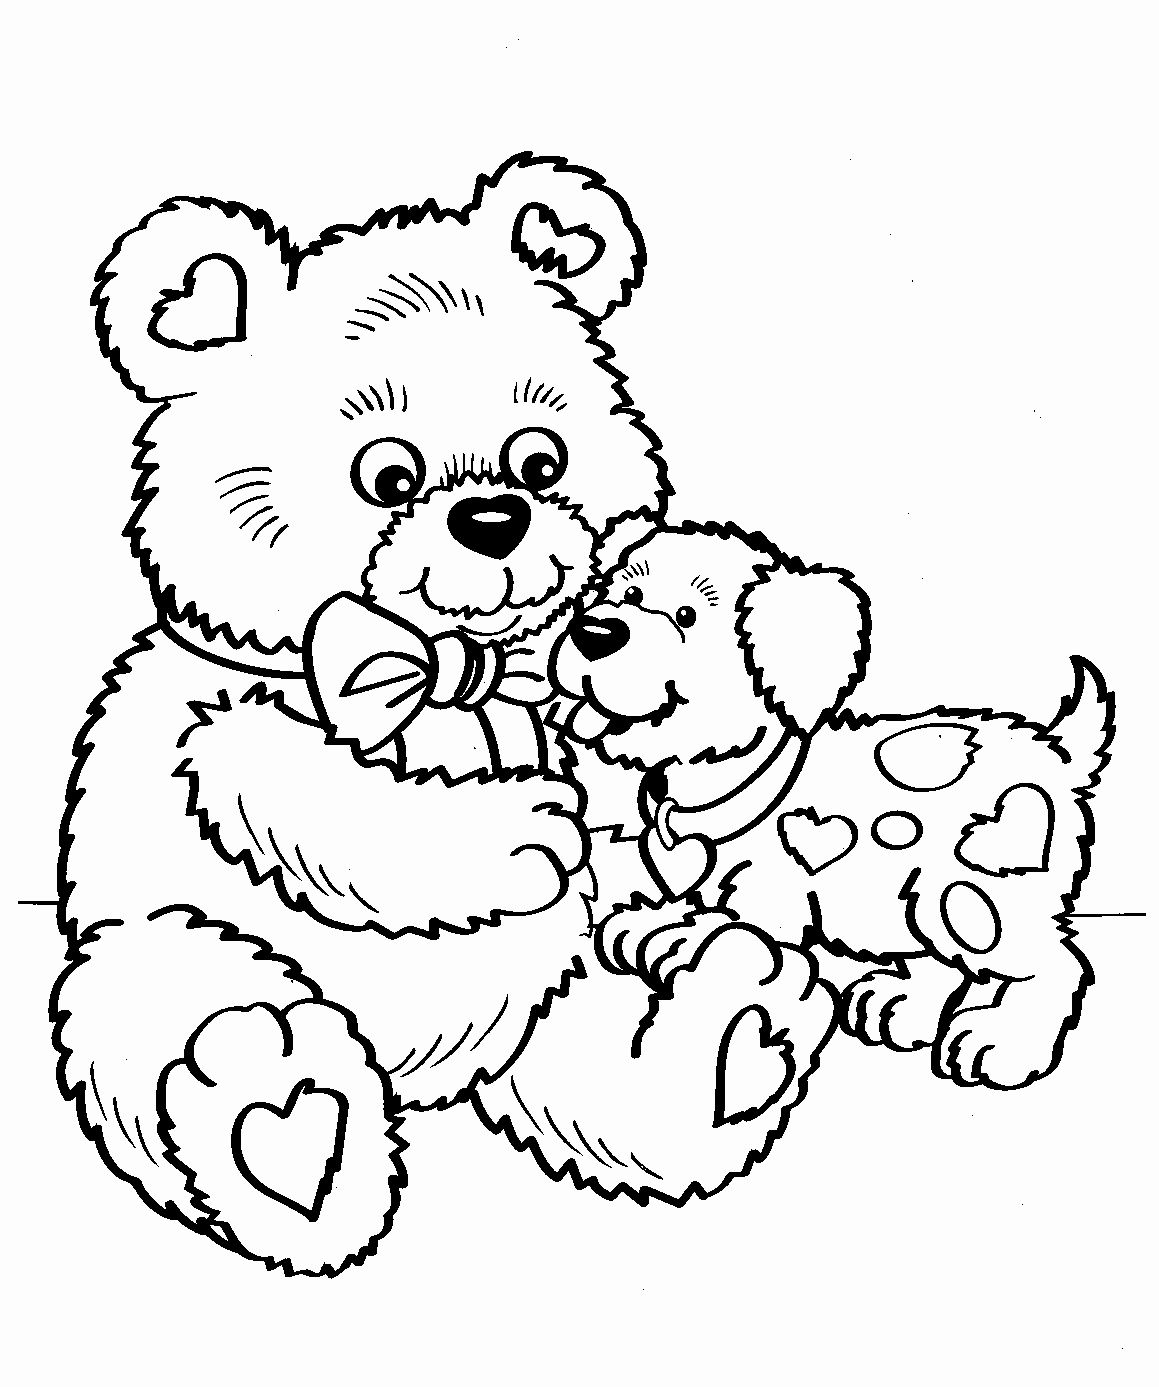 Valentines Coloring Pages Printable Unique Coloring Pages Hearts Free Prin Valentines Day Coloring Page Bear Coloring Pages Printable Valentines Coloring Pages